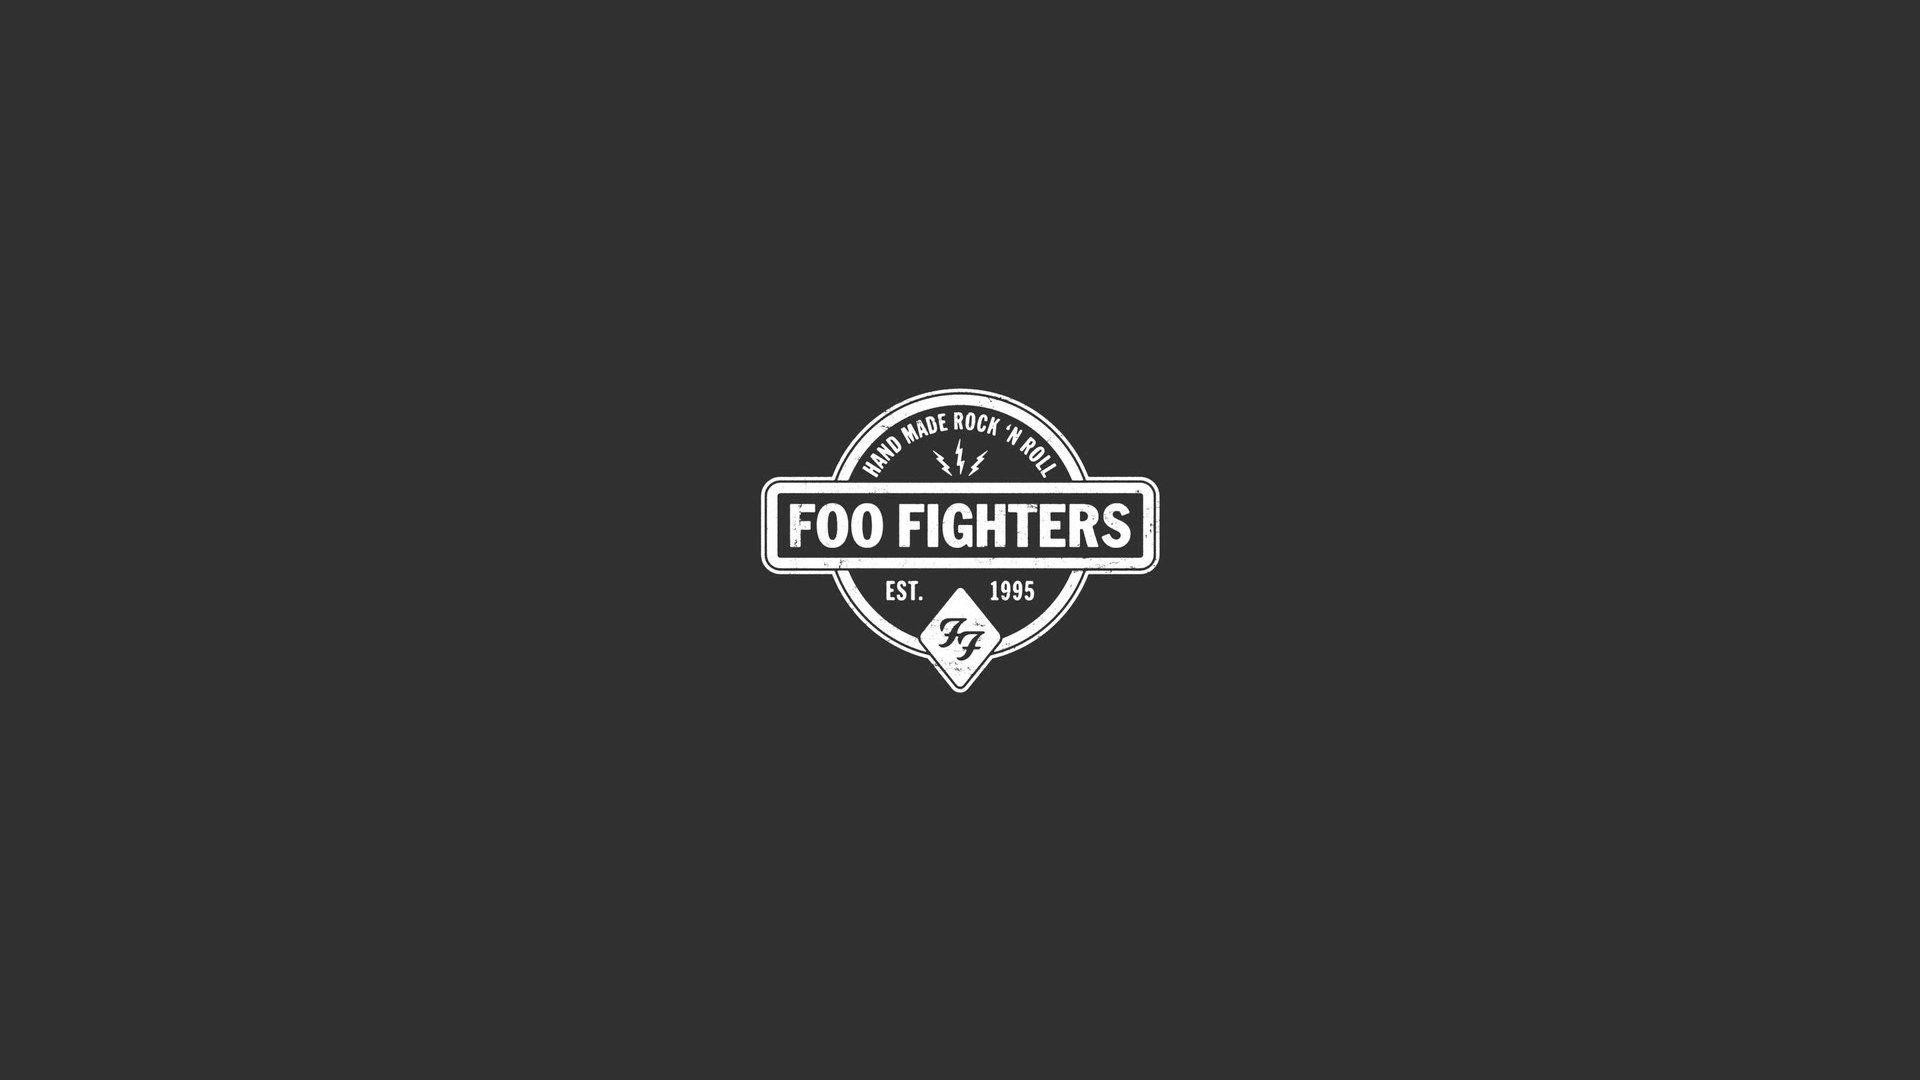 1920x1080 Foo Fighters Wallpapers 1